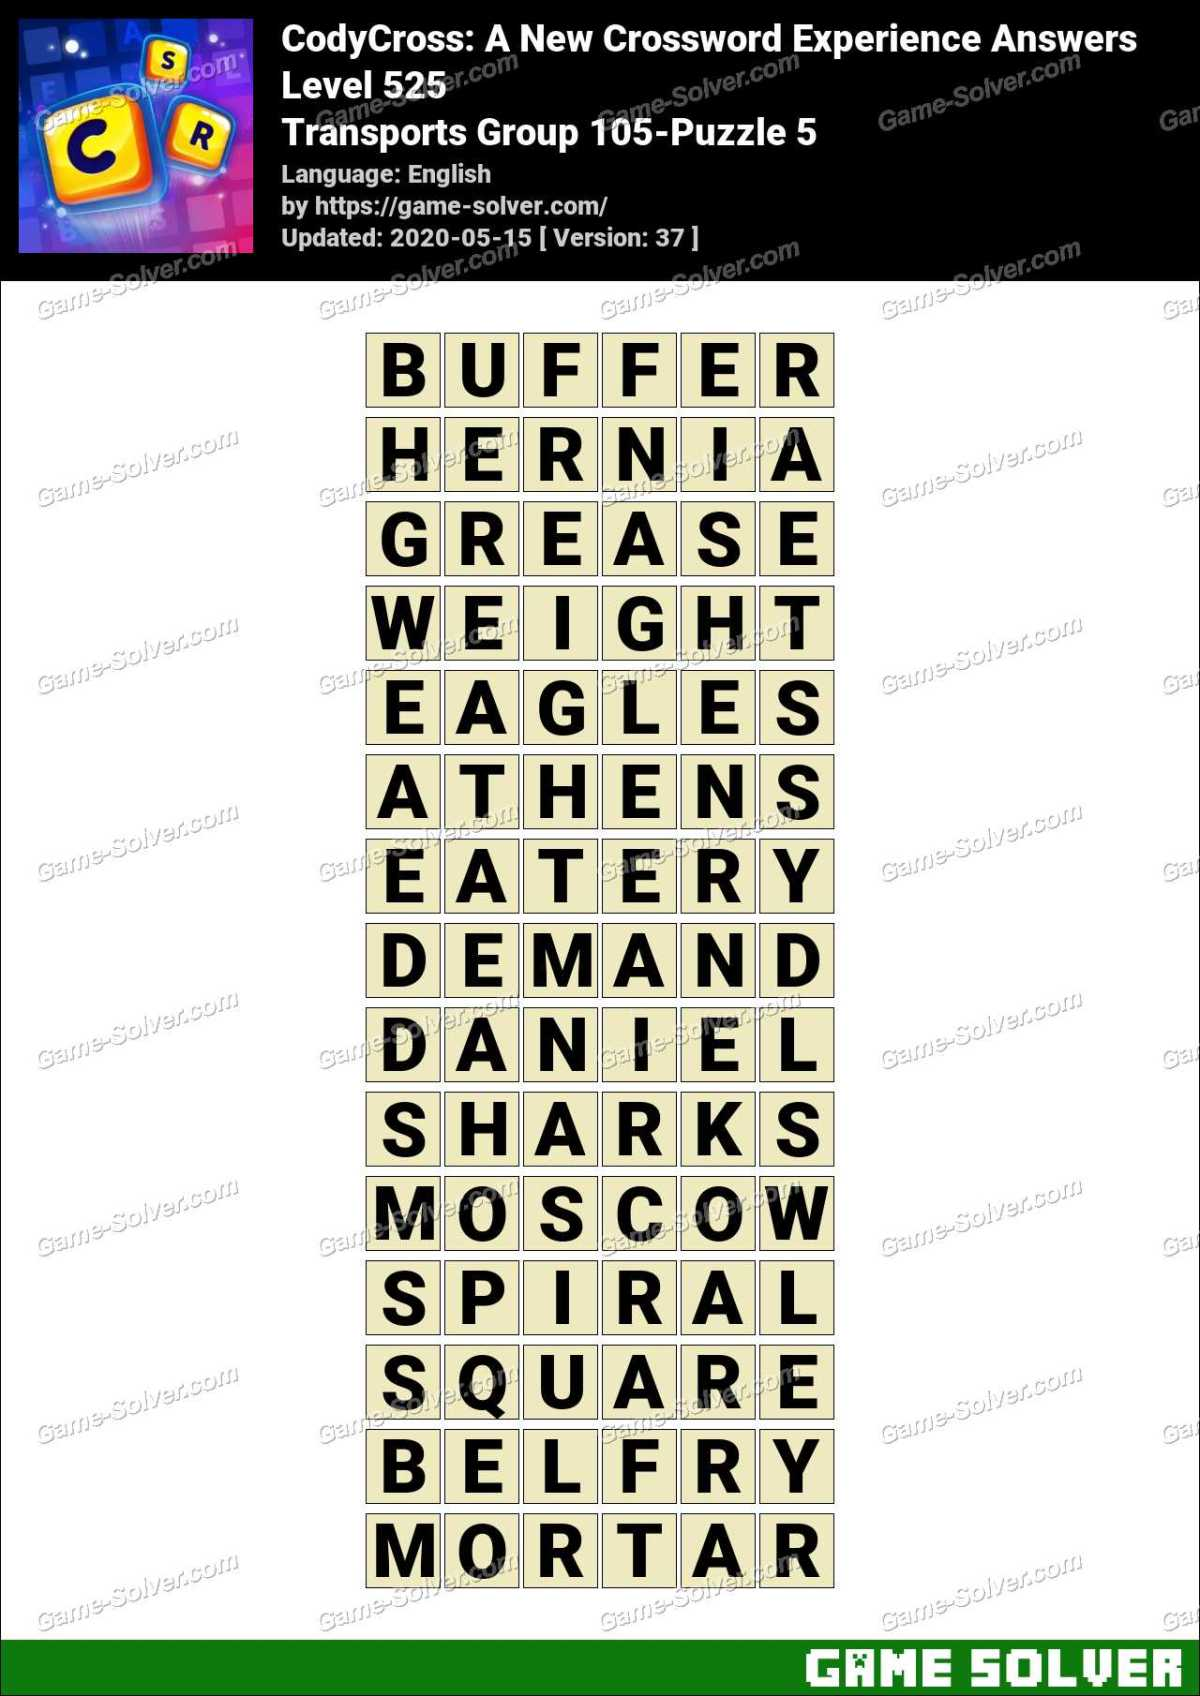 CodyCross Transports Group 105-Puzzle 5 Answers